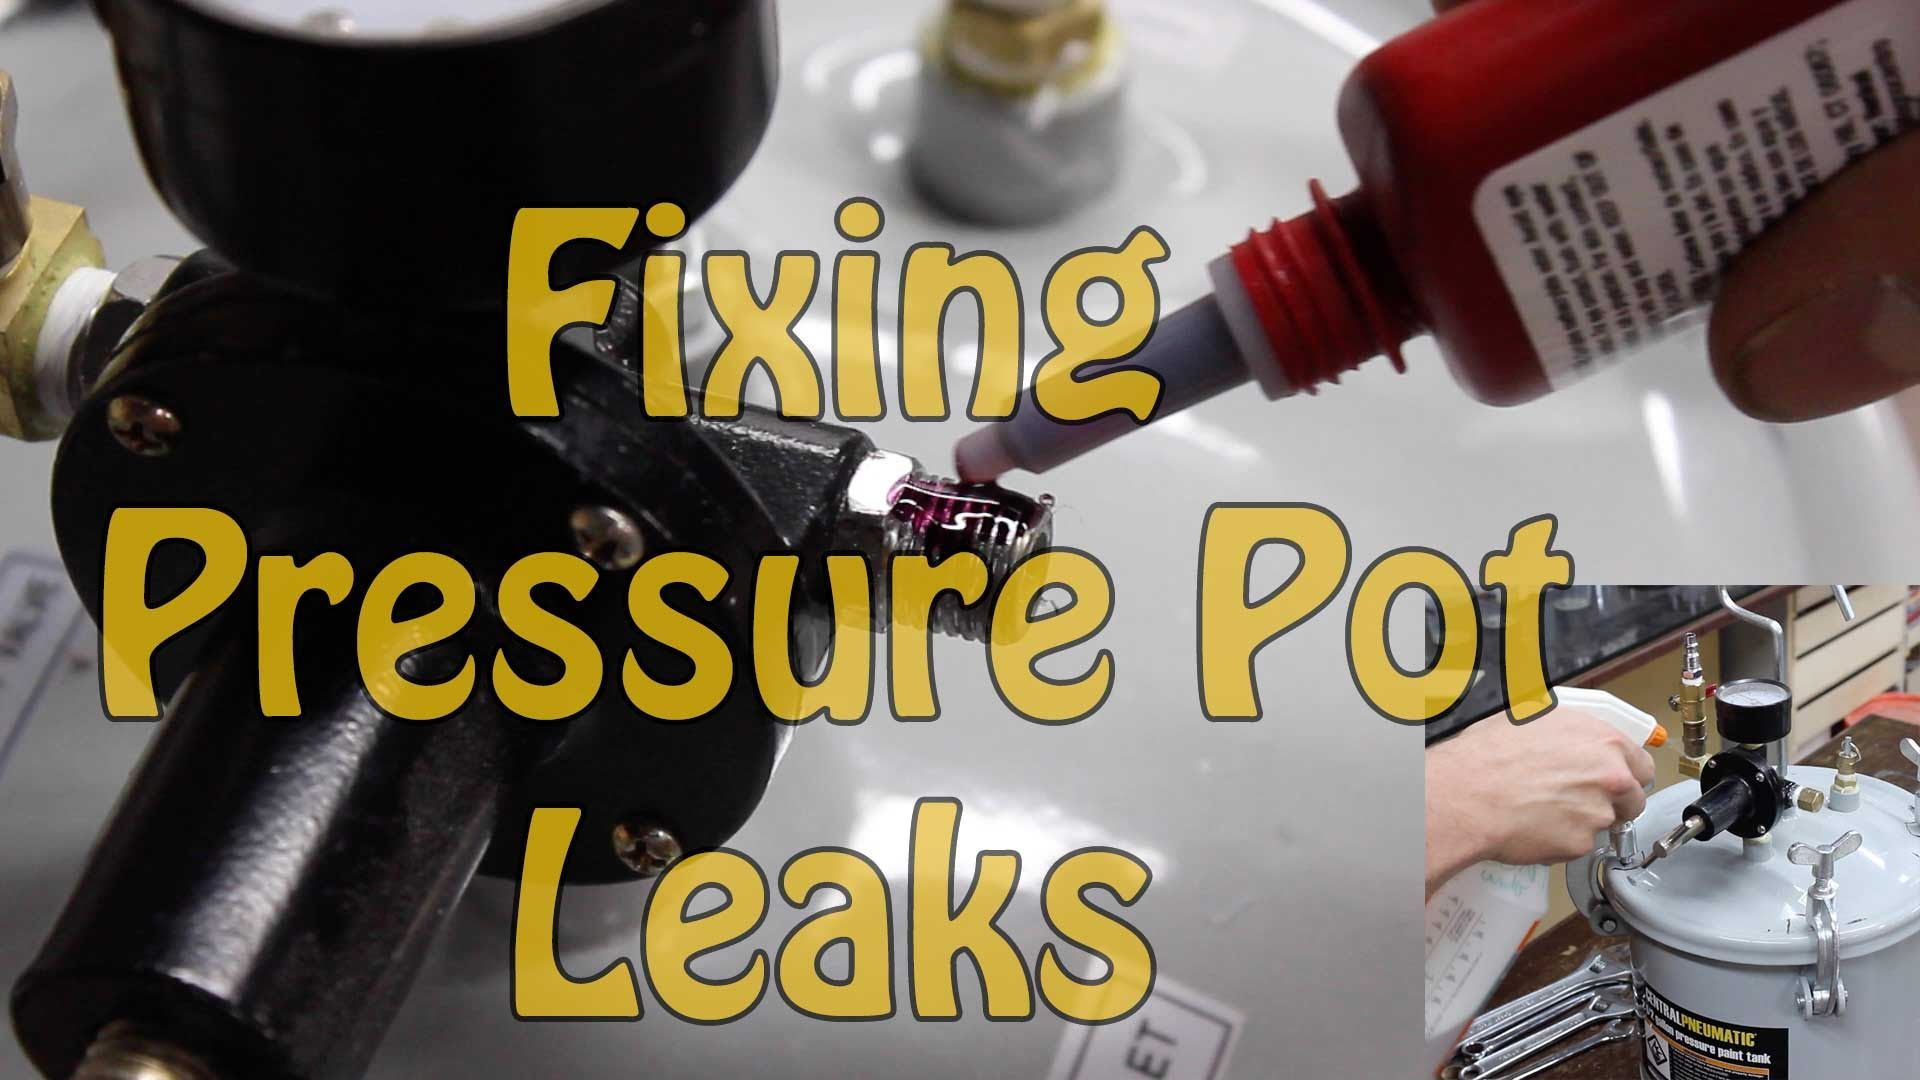 How to Find and Fix Air Leaks in a Pressure Pot for Resin